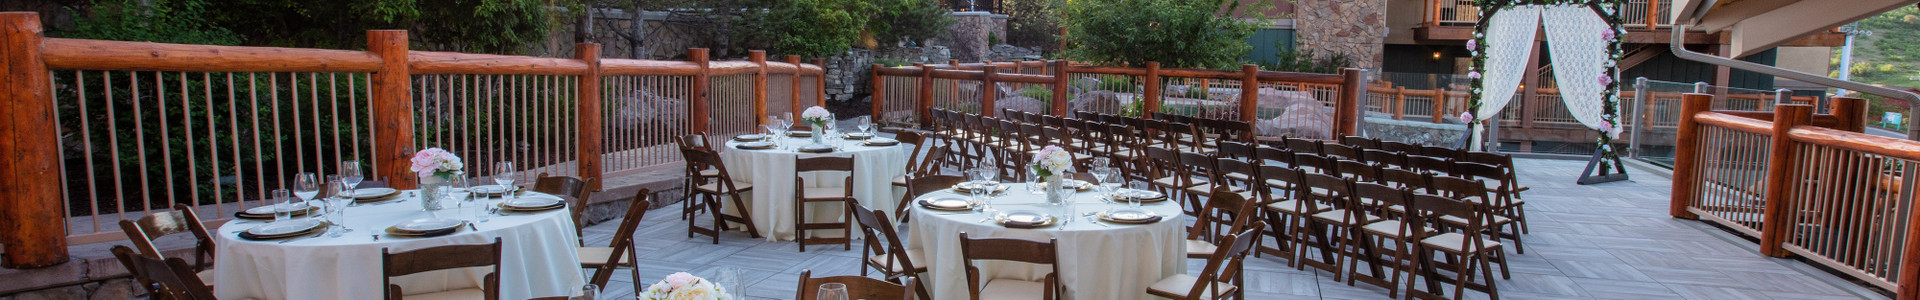 Park City Meeting Space For Weddings and Groups at our Utah Hotel and Ski Resort | Outdoor Wedding Space